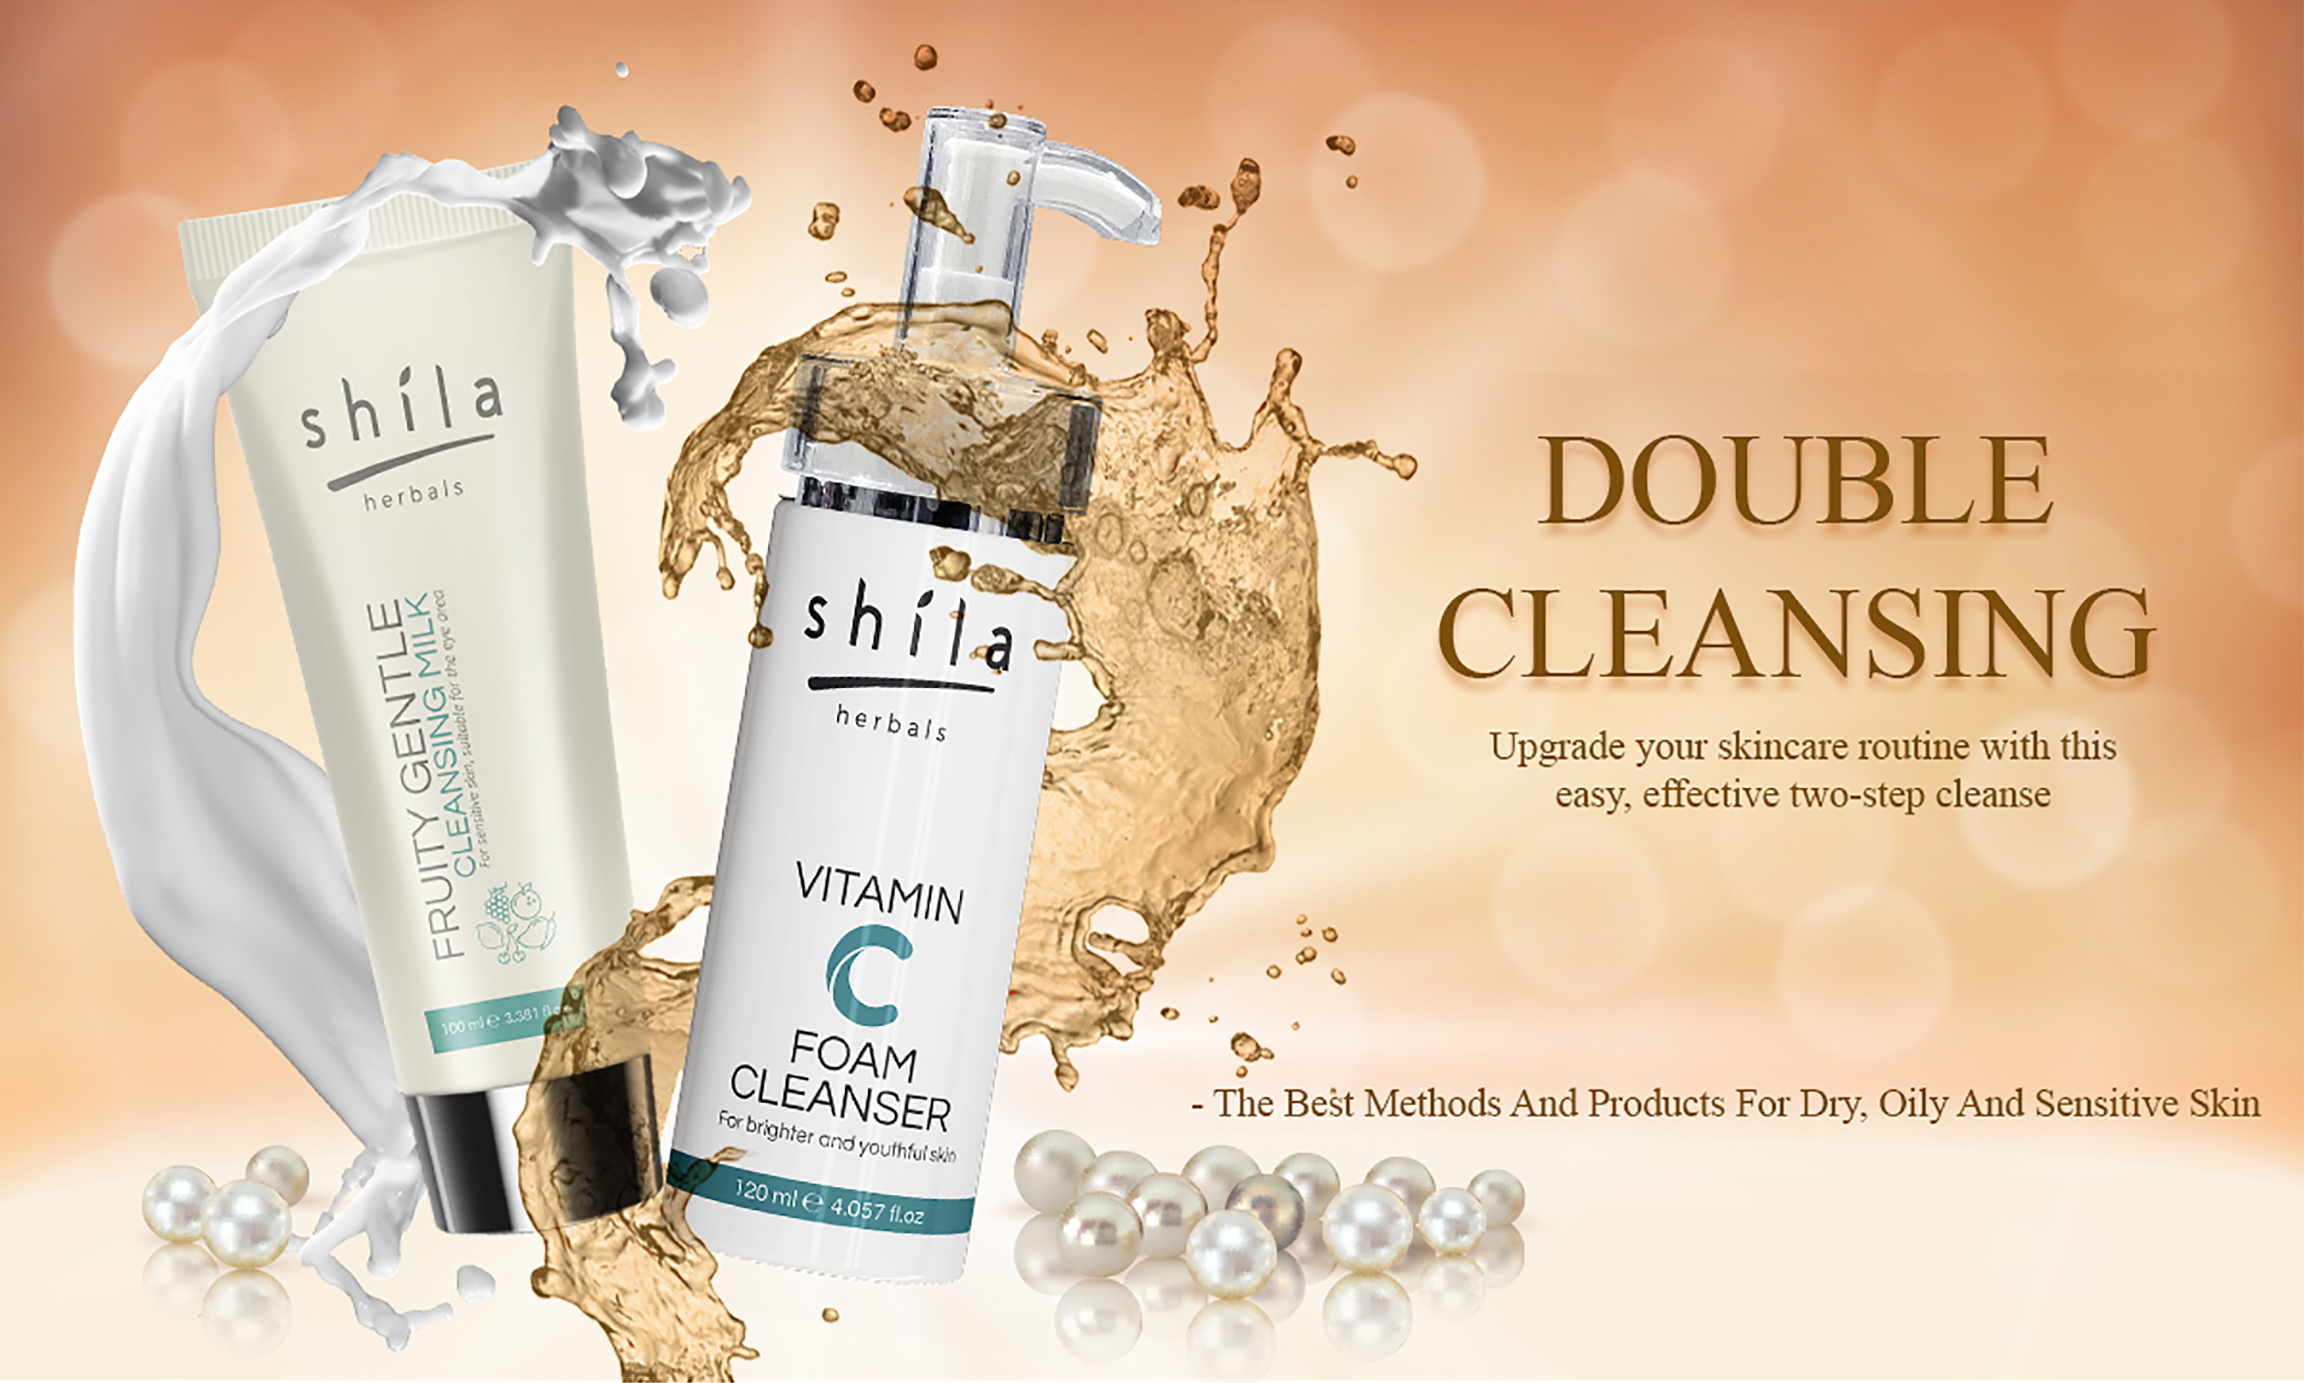 cleansing-banner